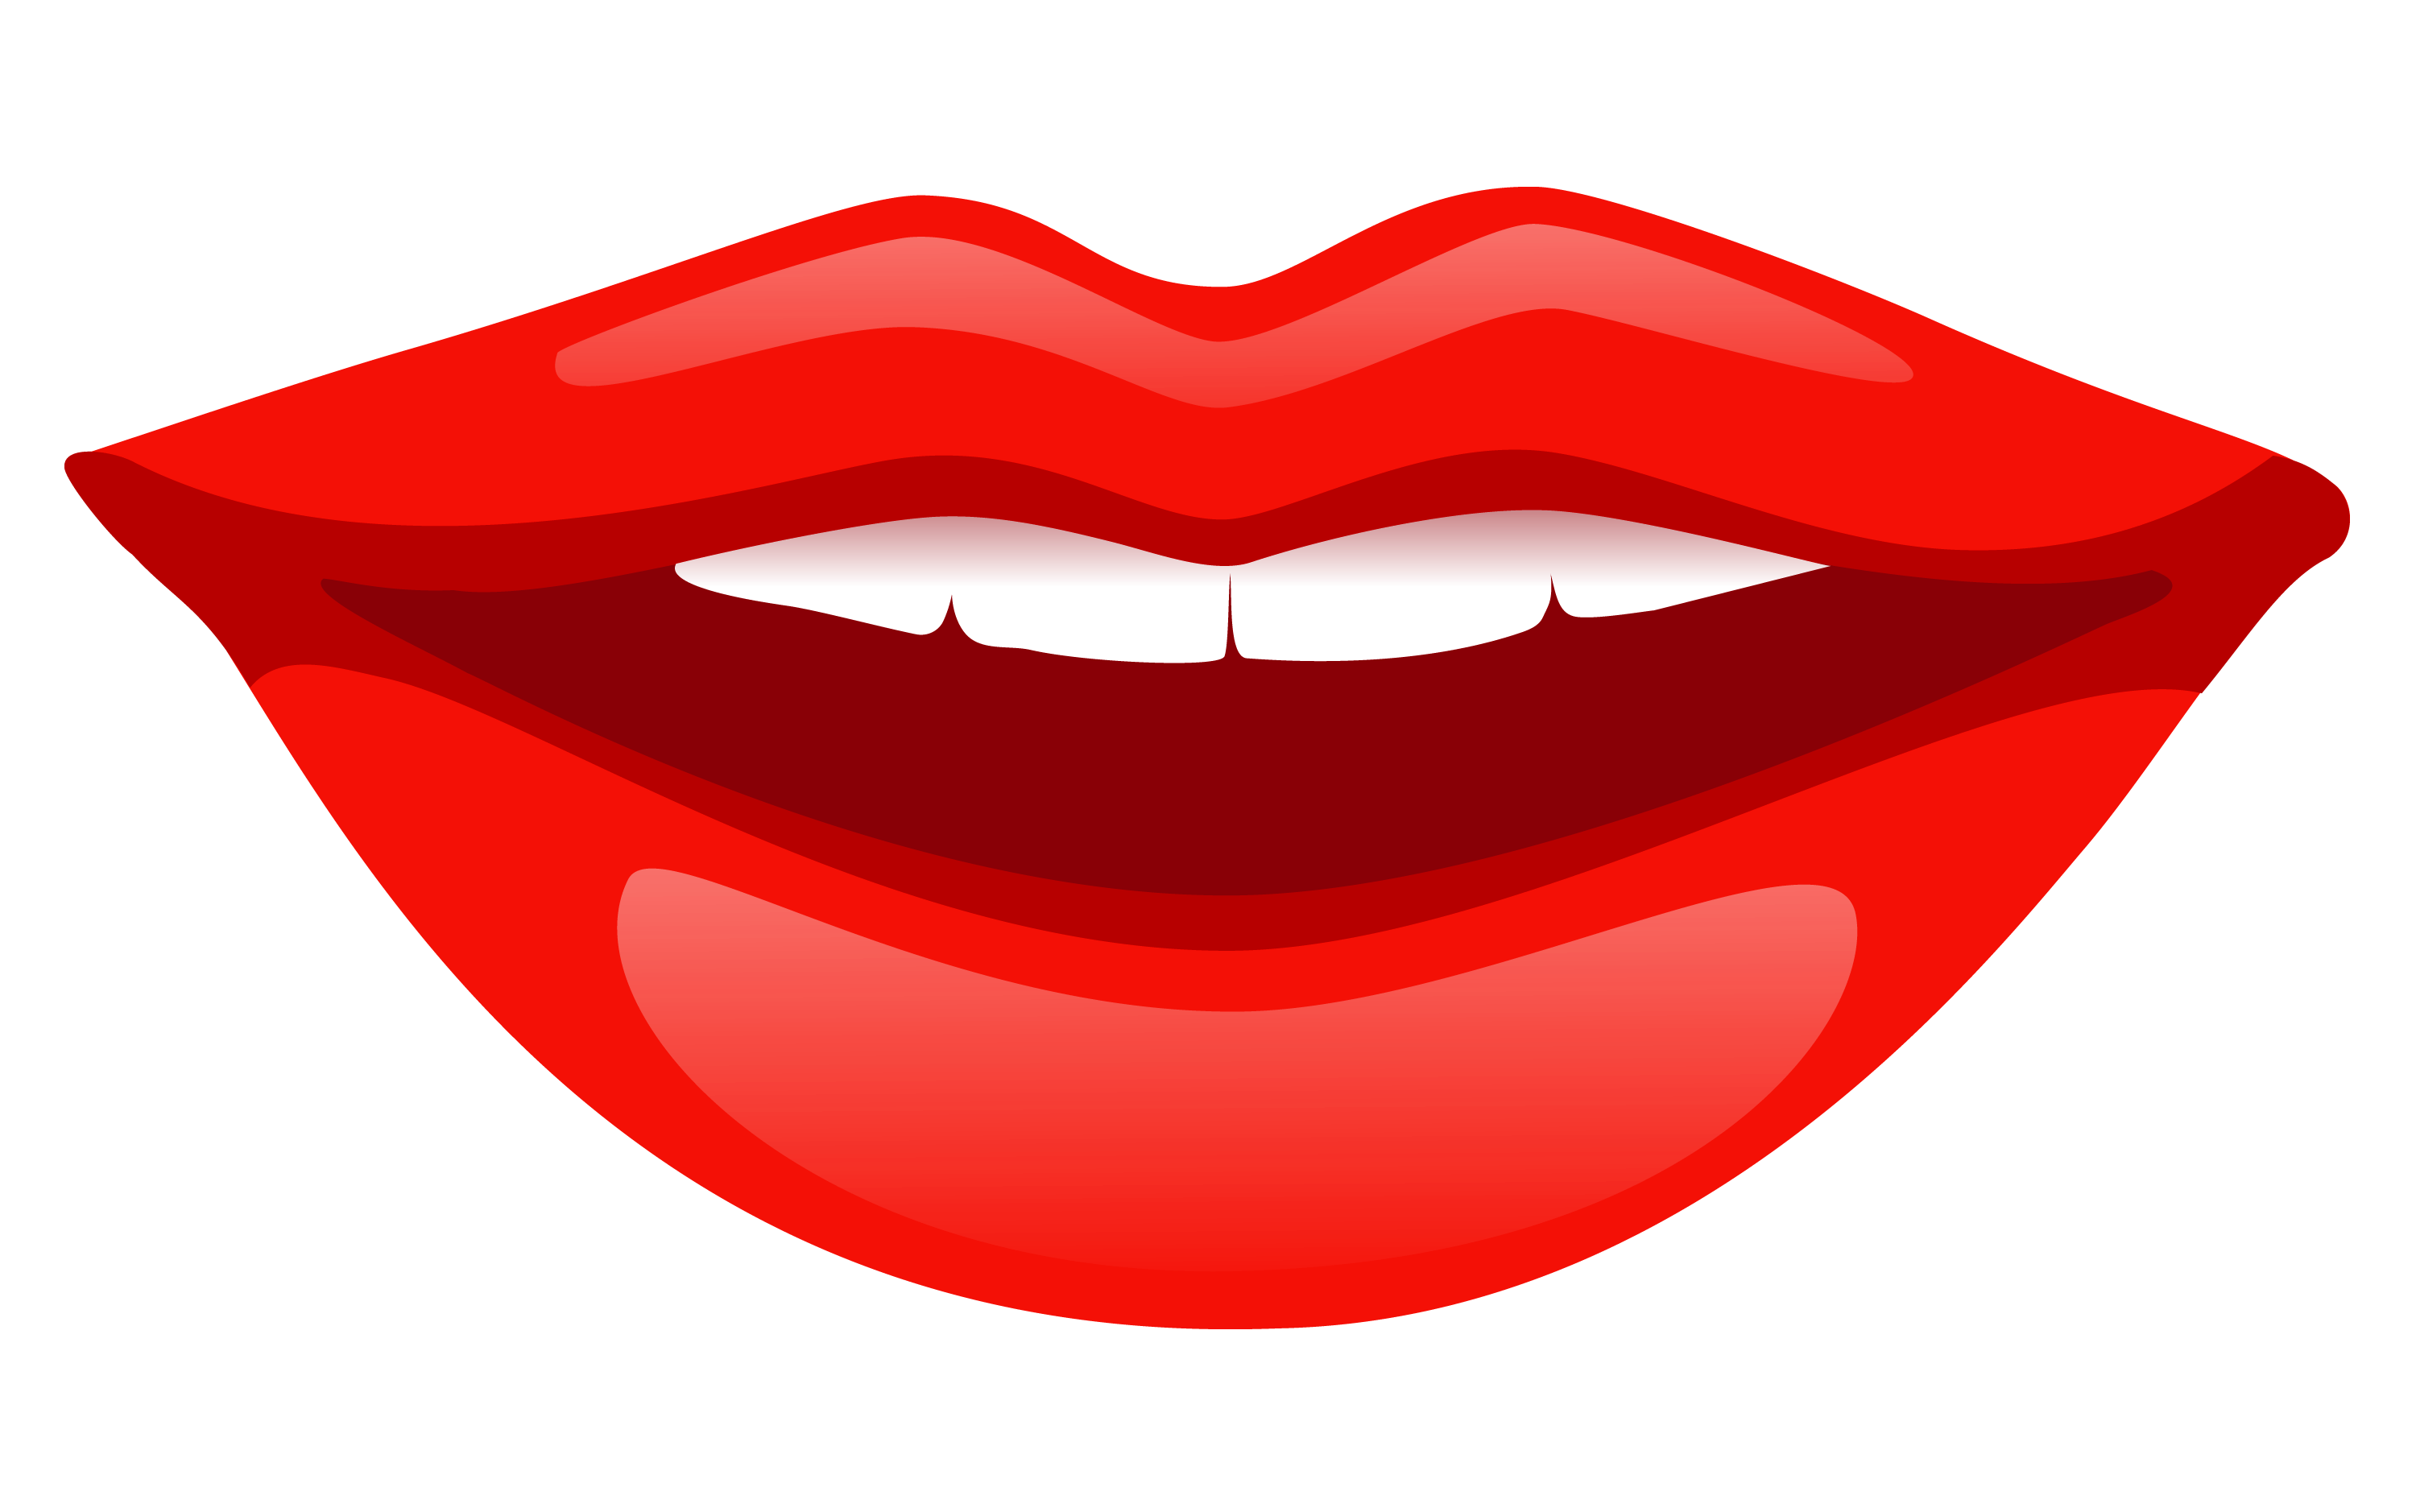 Woman lips png. Transparent image pngpix